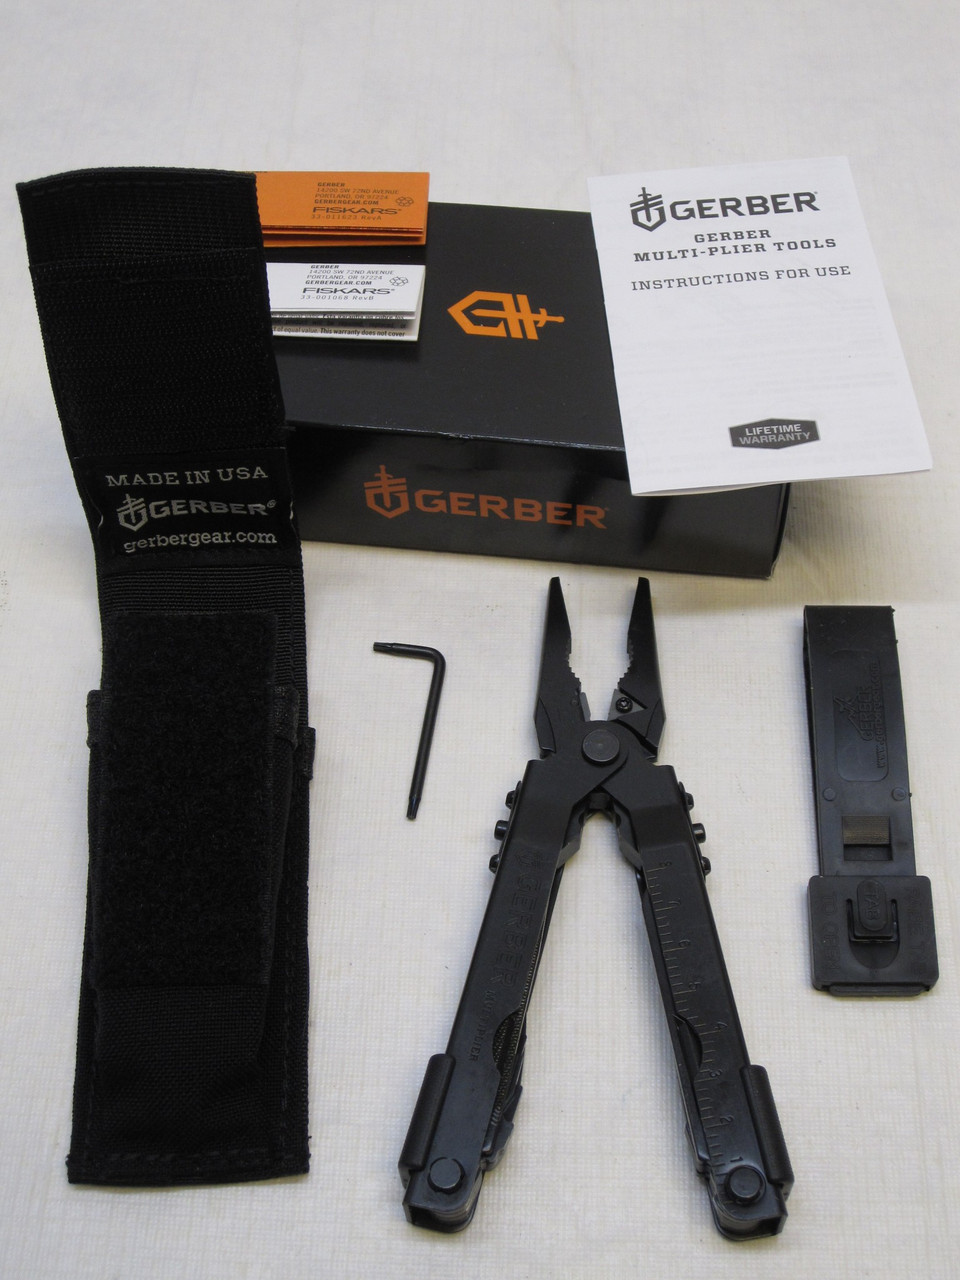 NEW MILITARY GERBER MP600 NEEDLE NOSE PLIERS MULTI-TOOL BLACK OXIDE FINISH POUCH